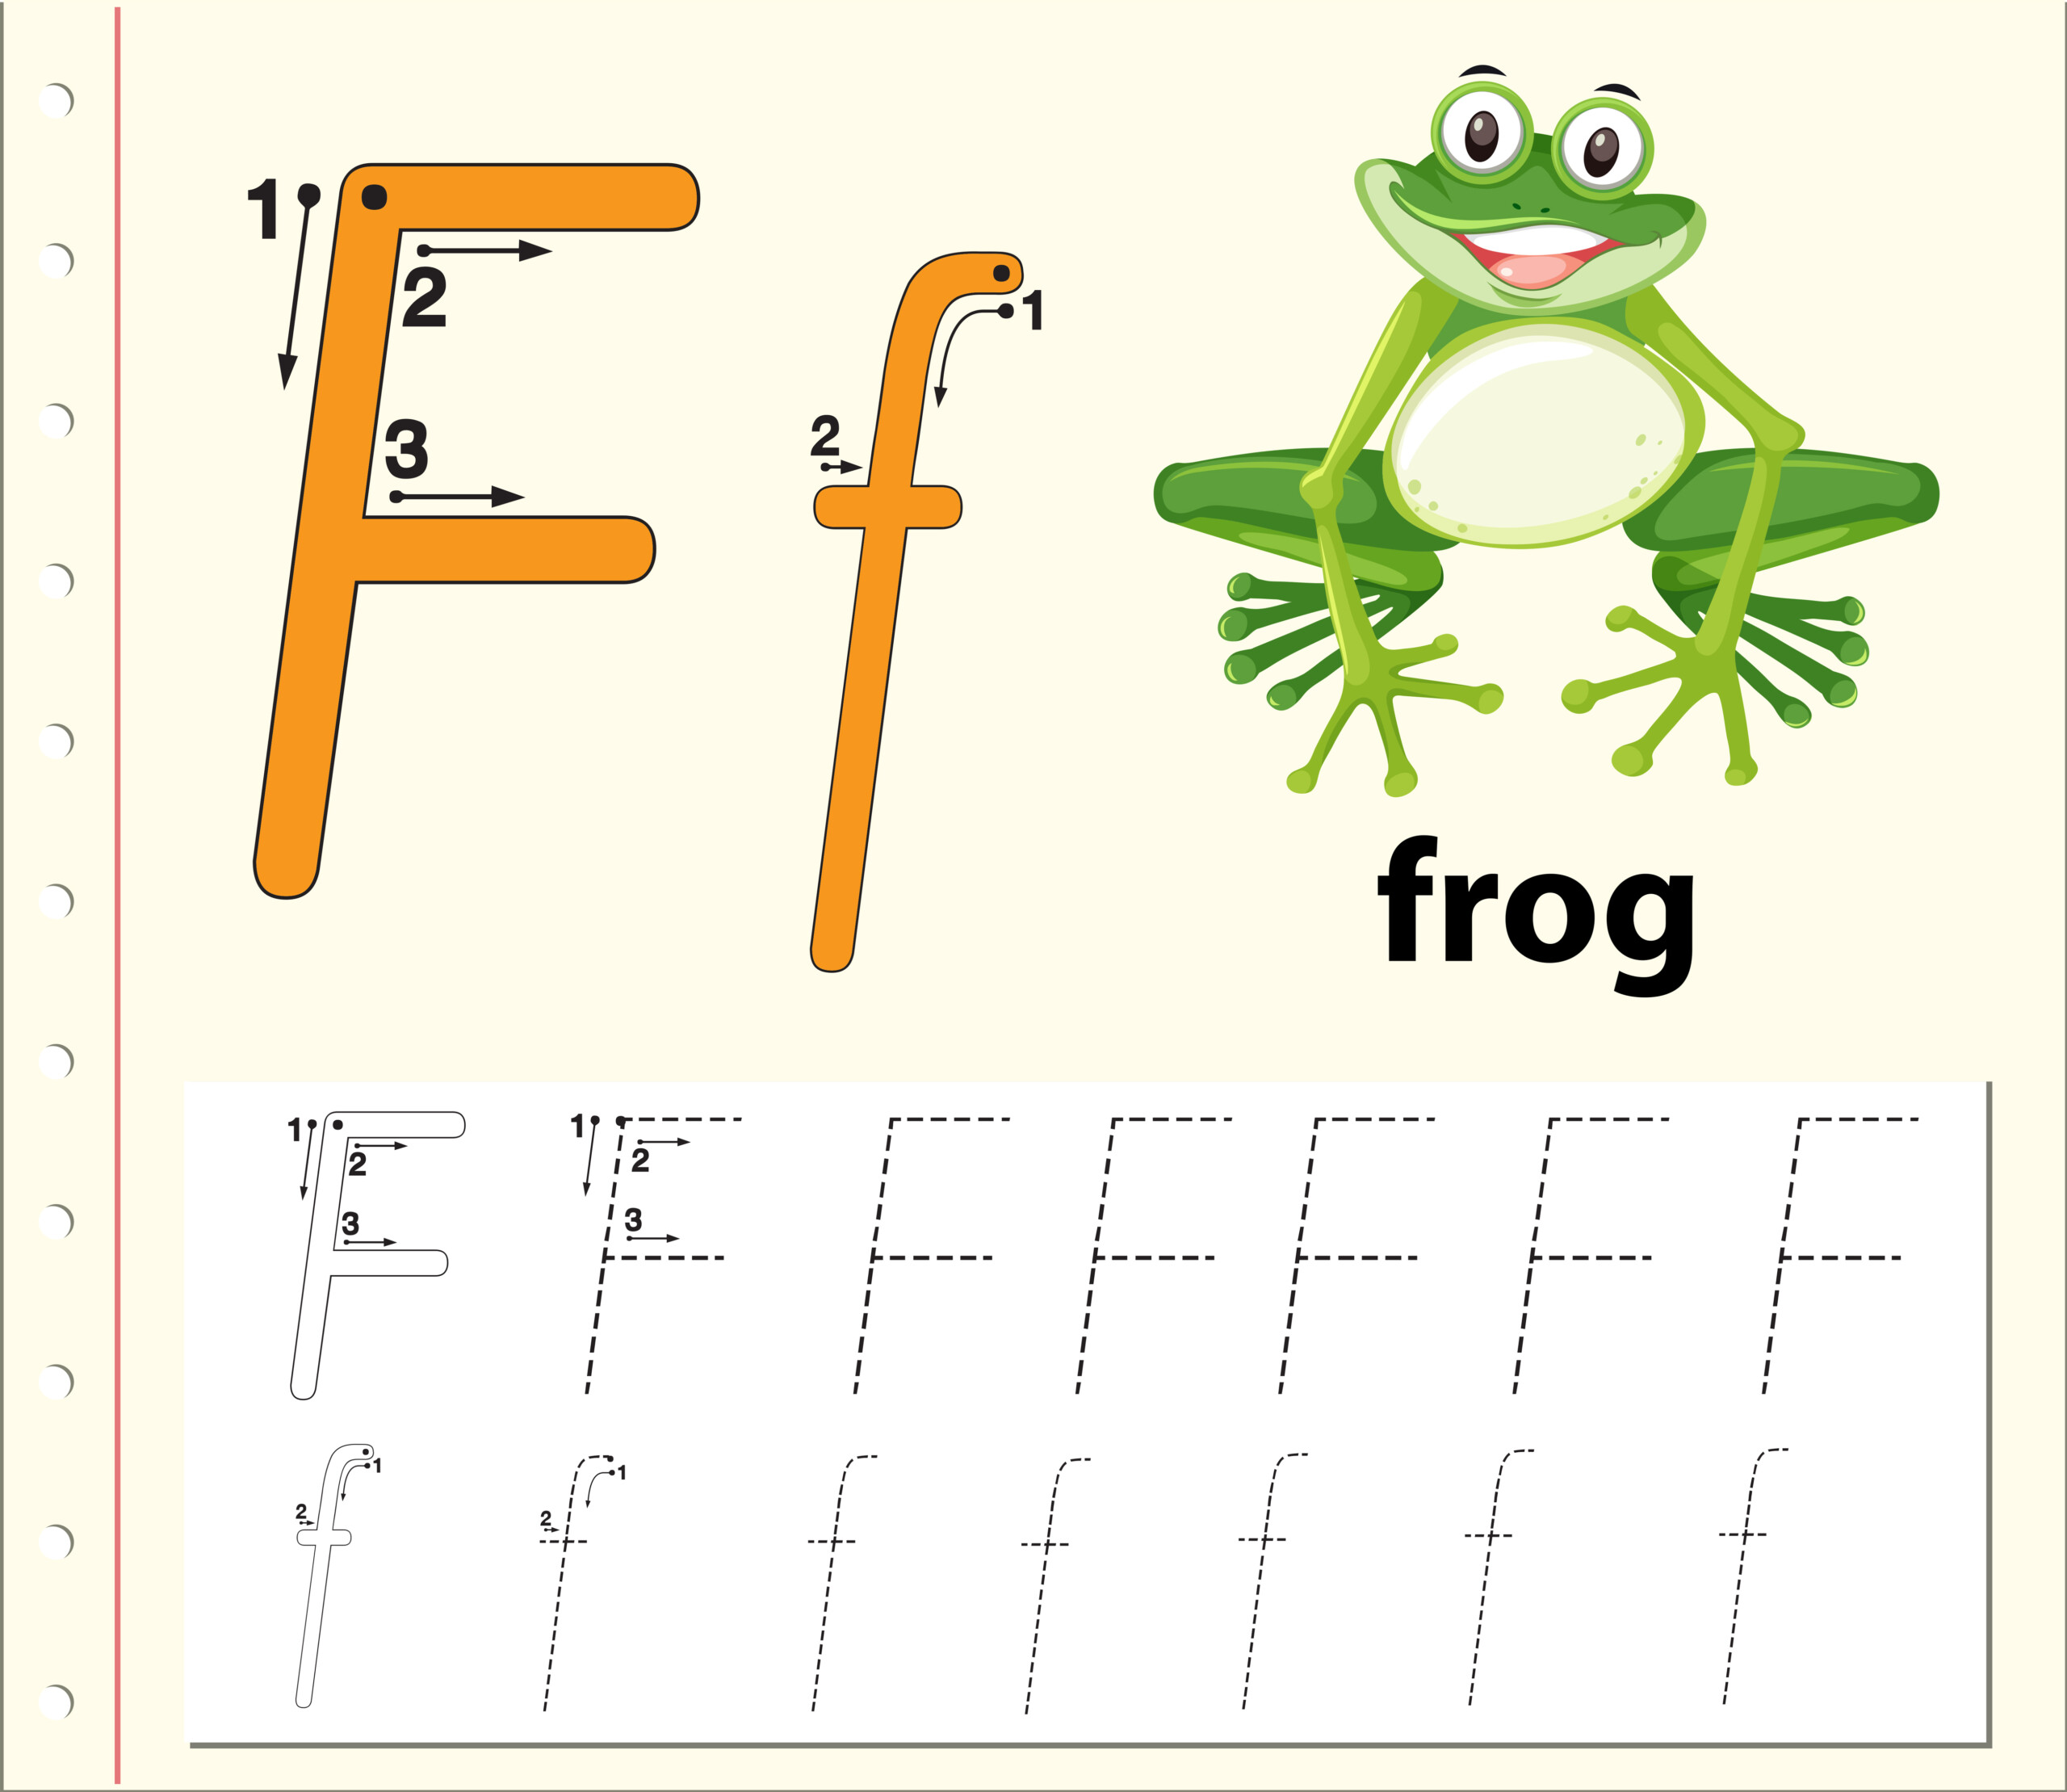 Letter F Tracing Alphabet Worksheets - Download Free Vectors